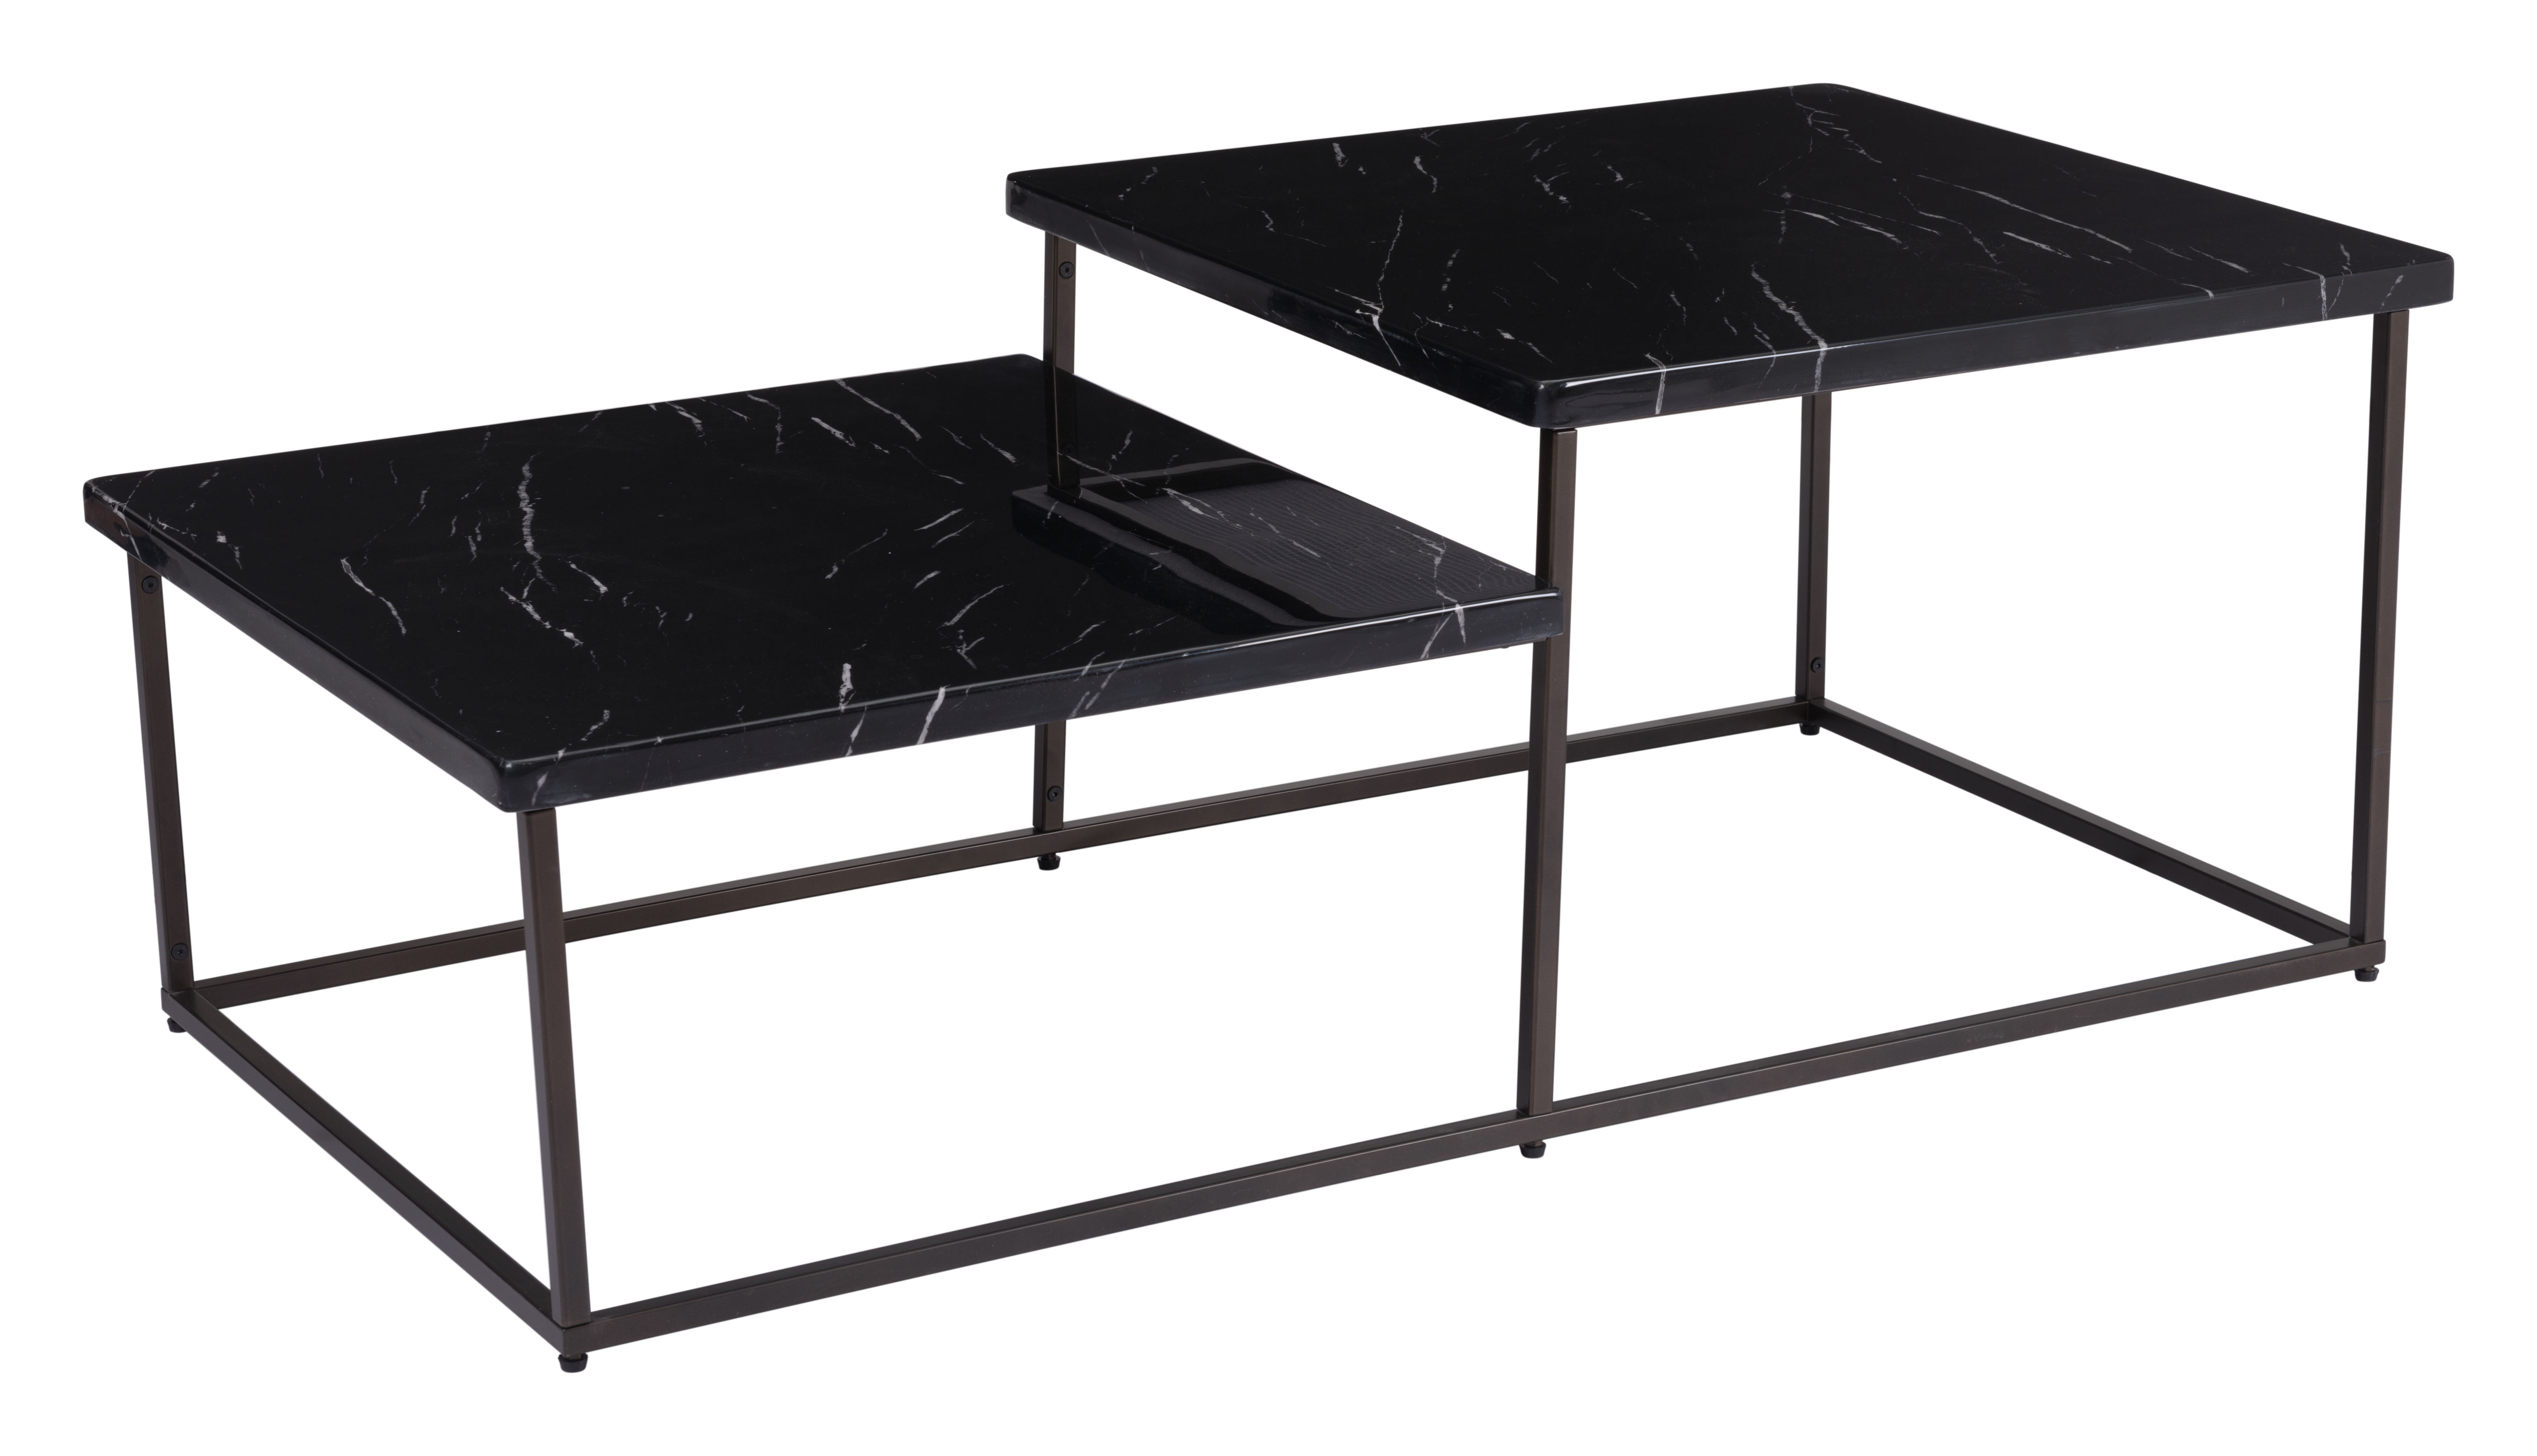 Super Stanton Coffee Table Black Stone Antique Brass By Zuo Modern Ncnpc Chair Design For Home Ncnpcorg